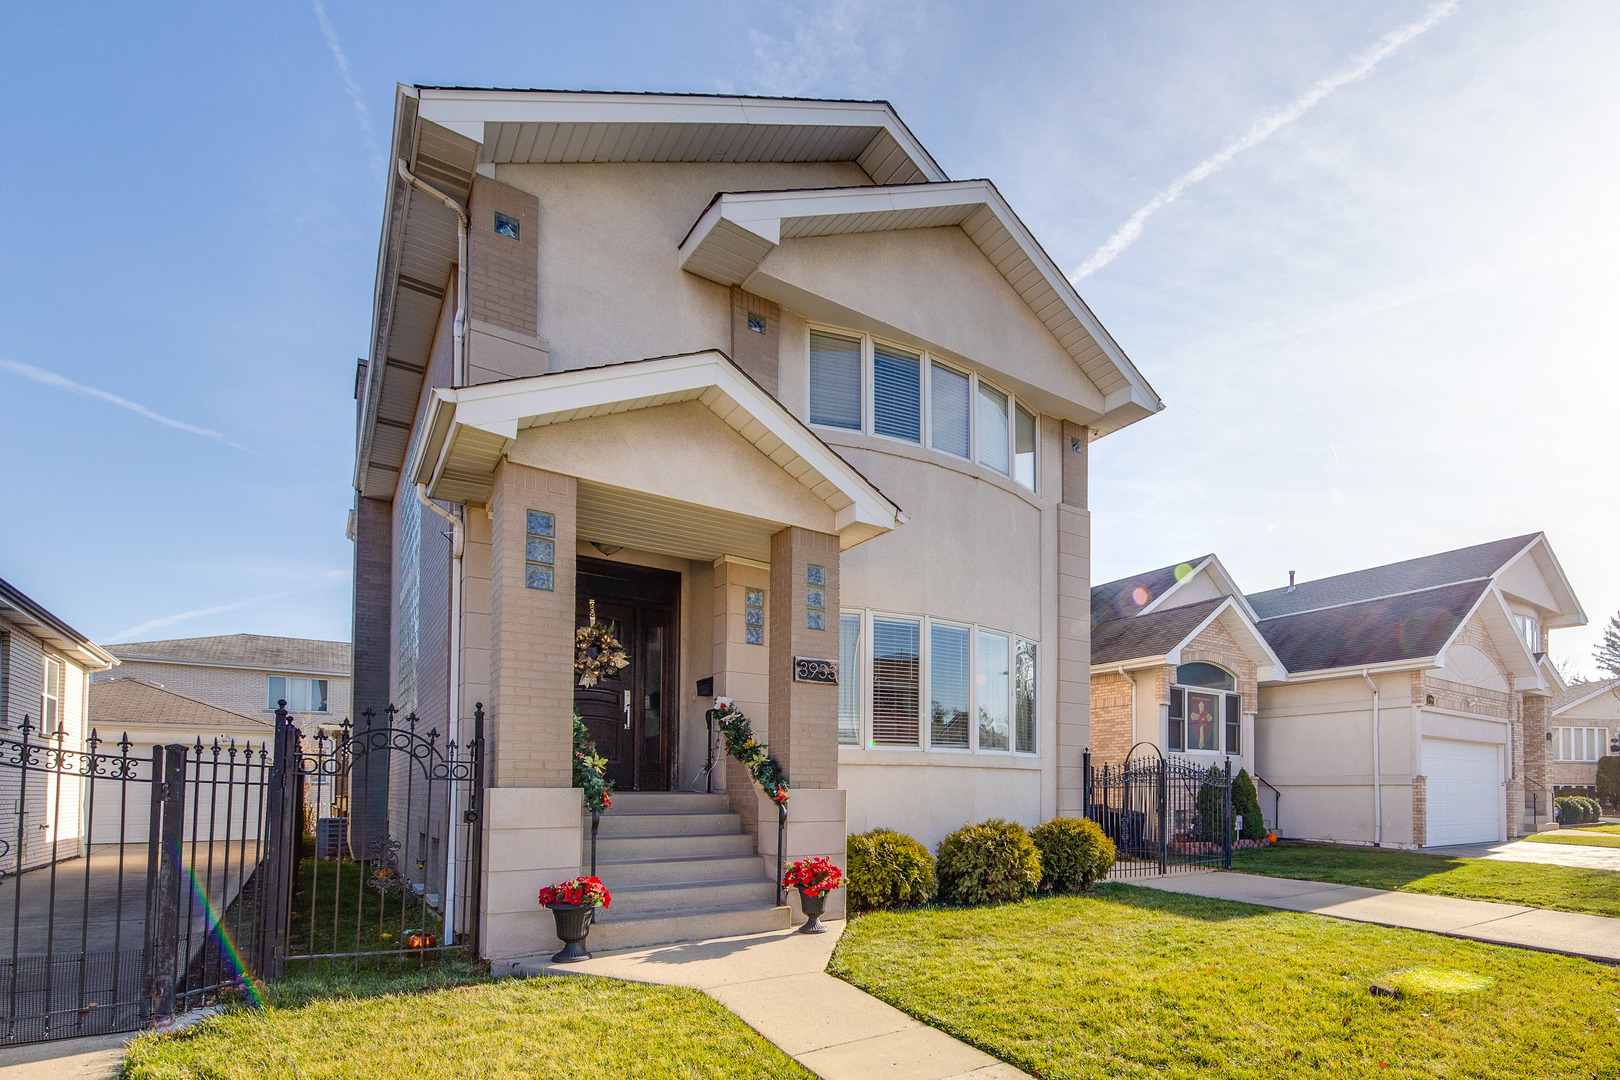 MOVE IN READY, CUSTOM FINISHES 5 BEDROOM/4 BATH HOME IN SOUGHT IN AFTER AREA OF JEFFERSON PARK WITH